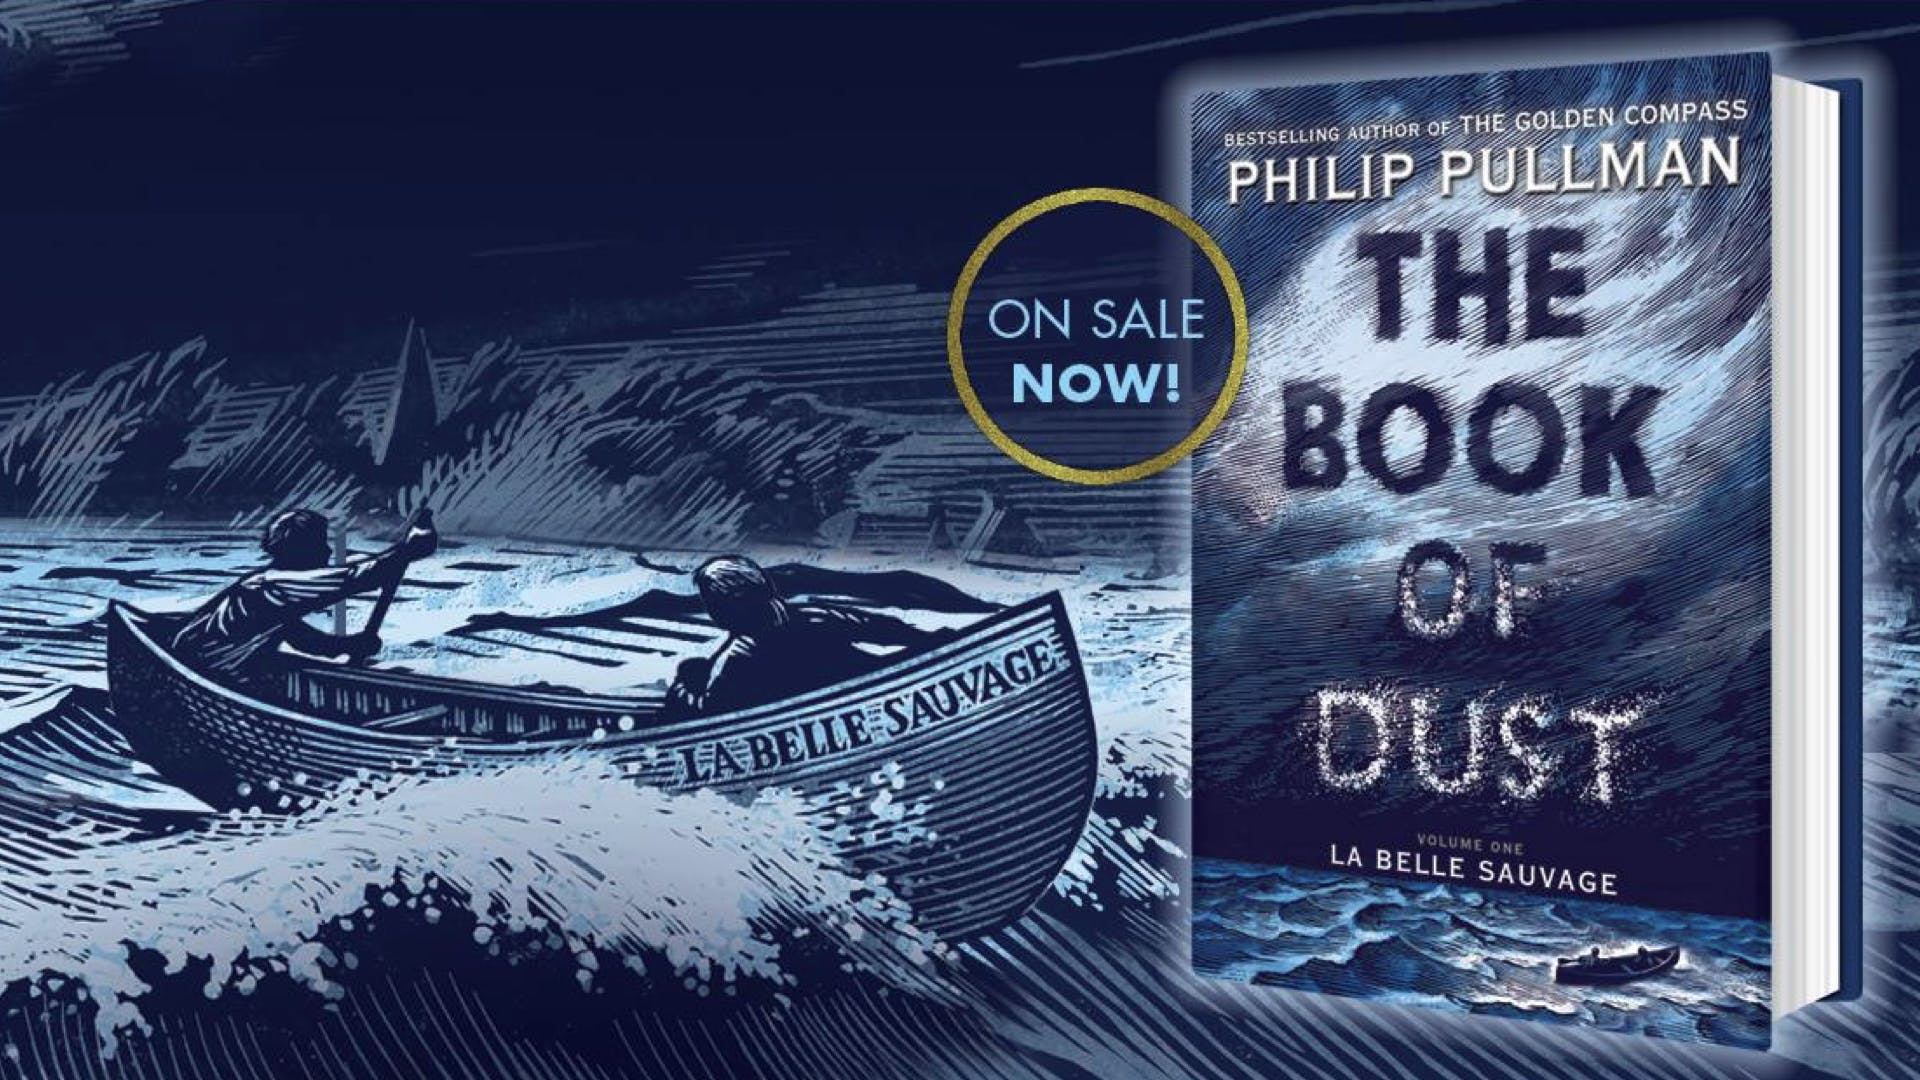 The Book of Dust Vol 1: La Belle Sauvage - Philip Pullman